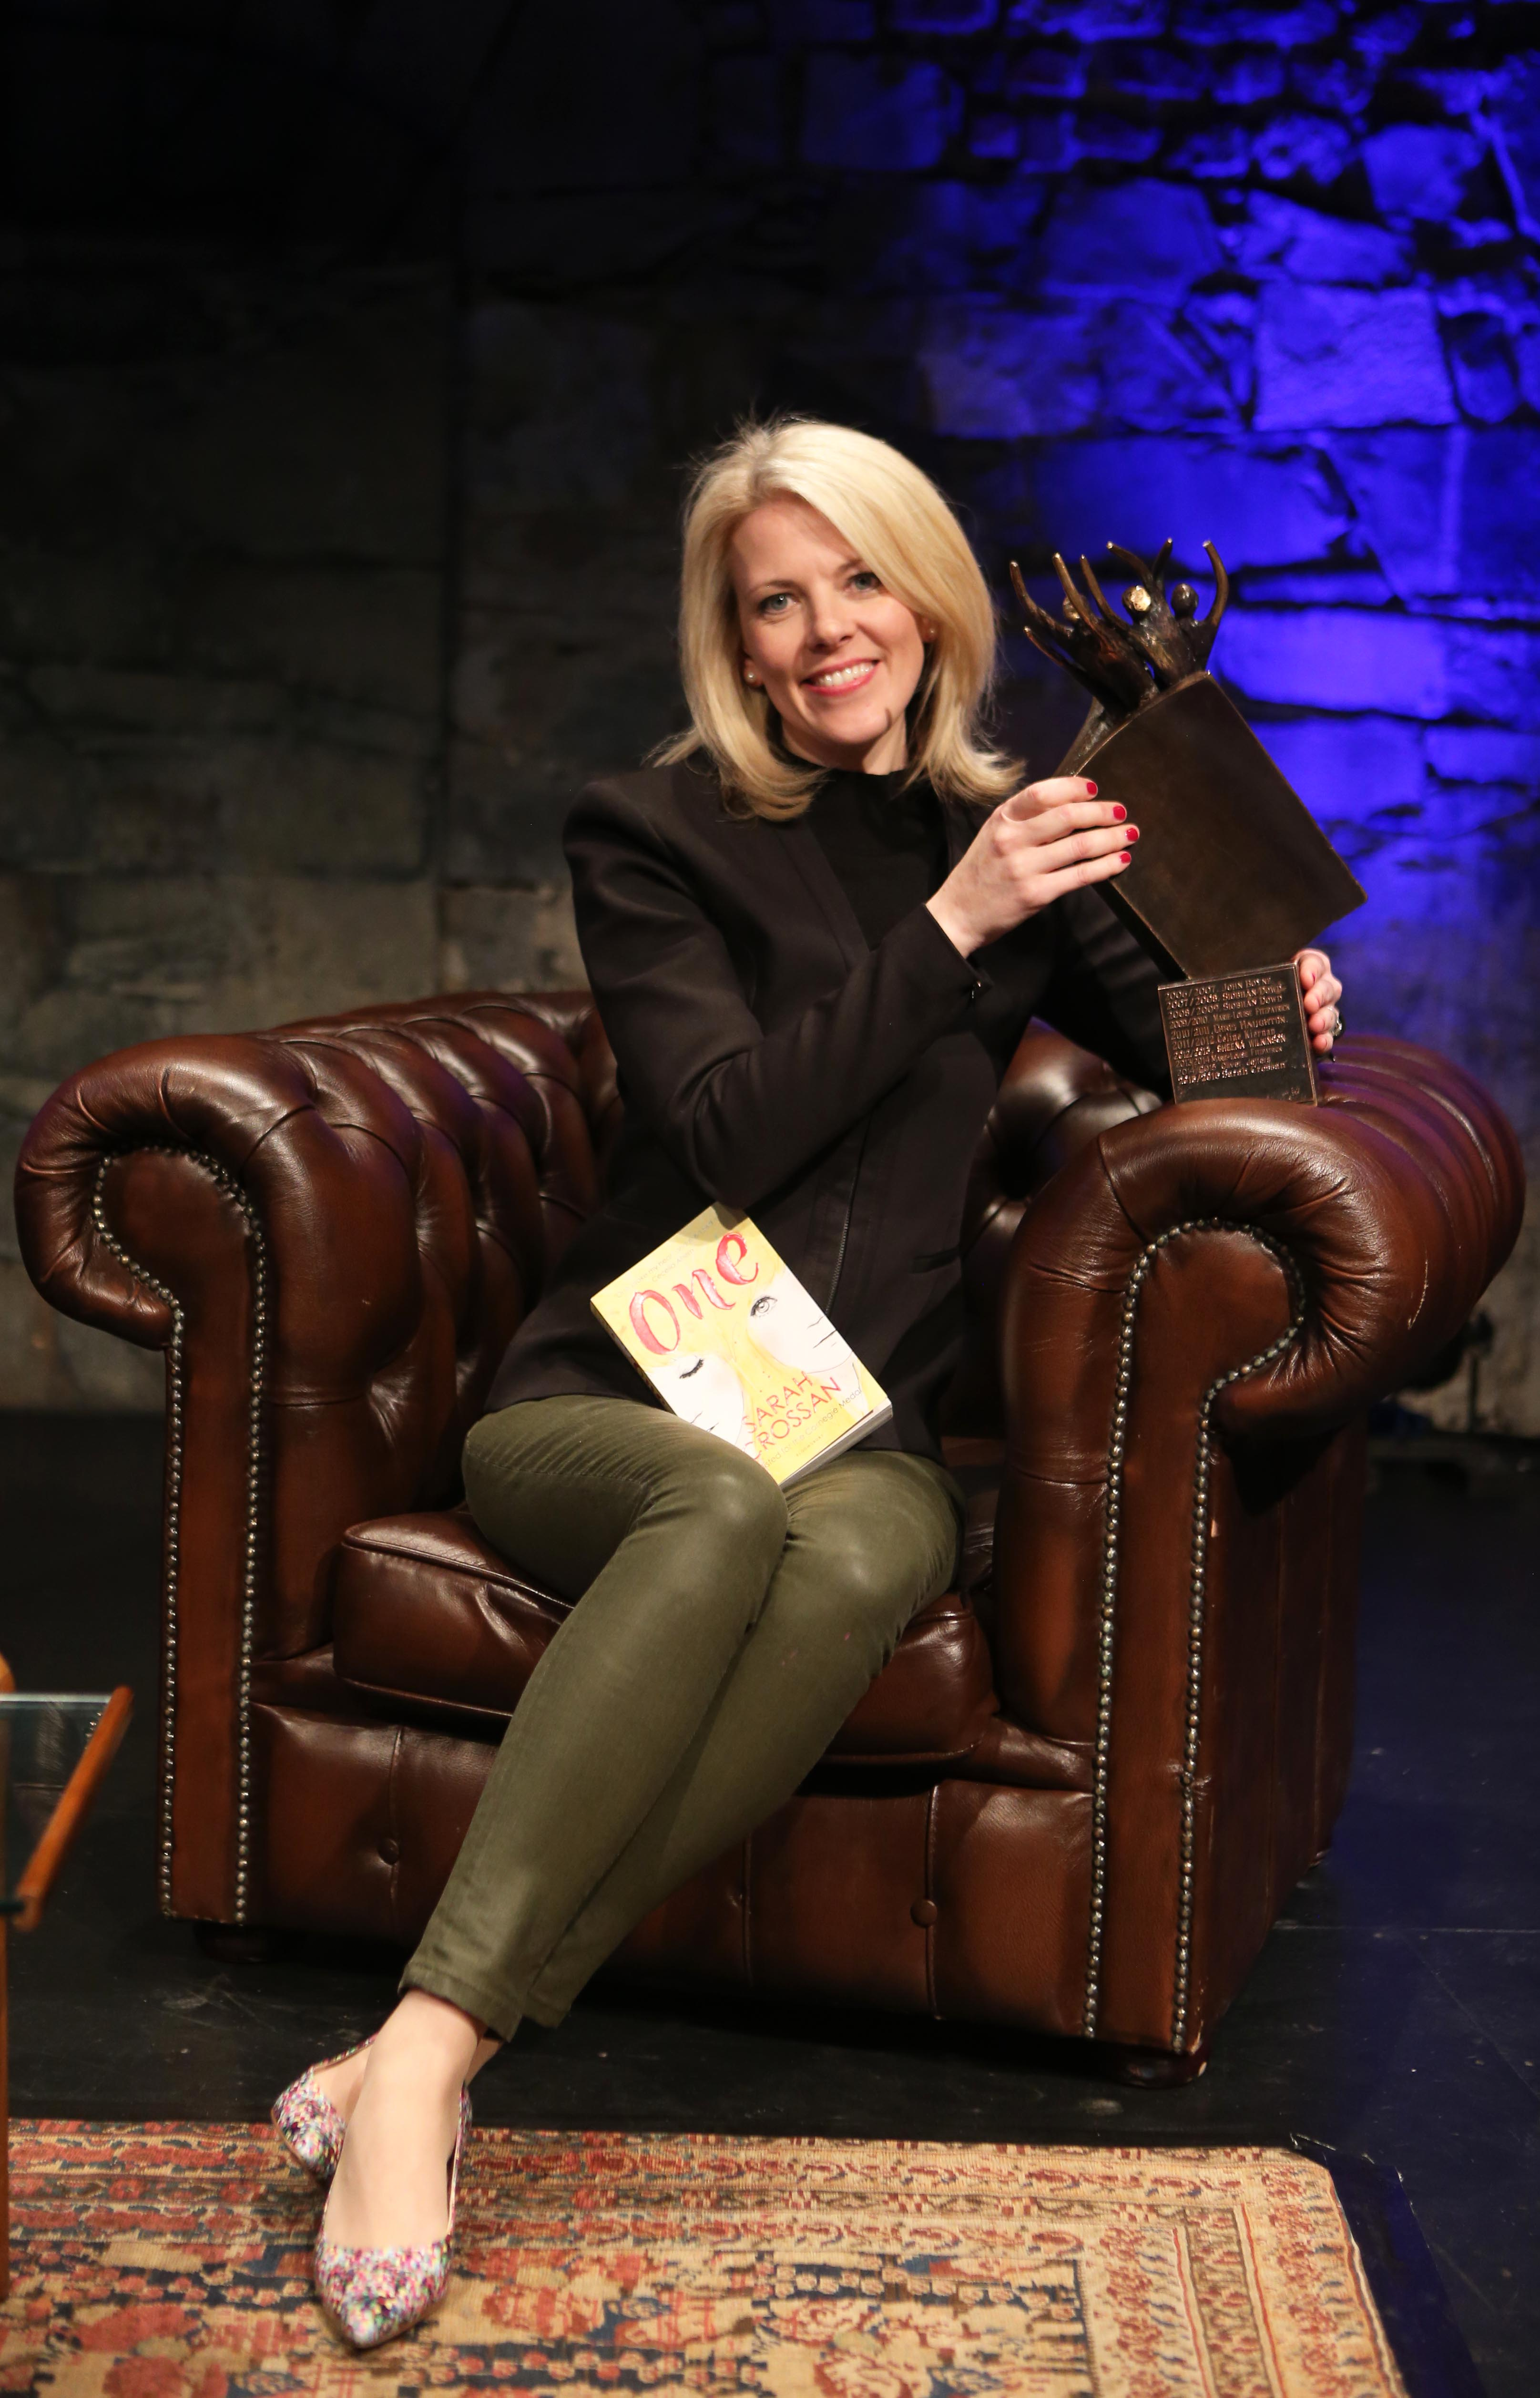 Author Sarah Crossan , pictured after she won the 26th CBI ( Children's Book Ireland) Book of the Year Award and the Childrens Choice award for her title One.The awards ceremony took place in Smock Alley Theatre in Dublin. Photo: Leon Farrell/Photocall Ireland.